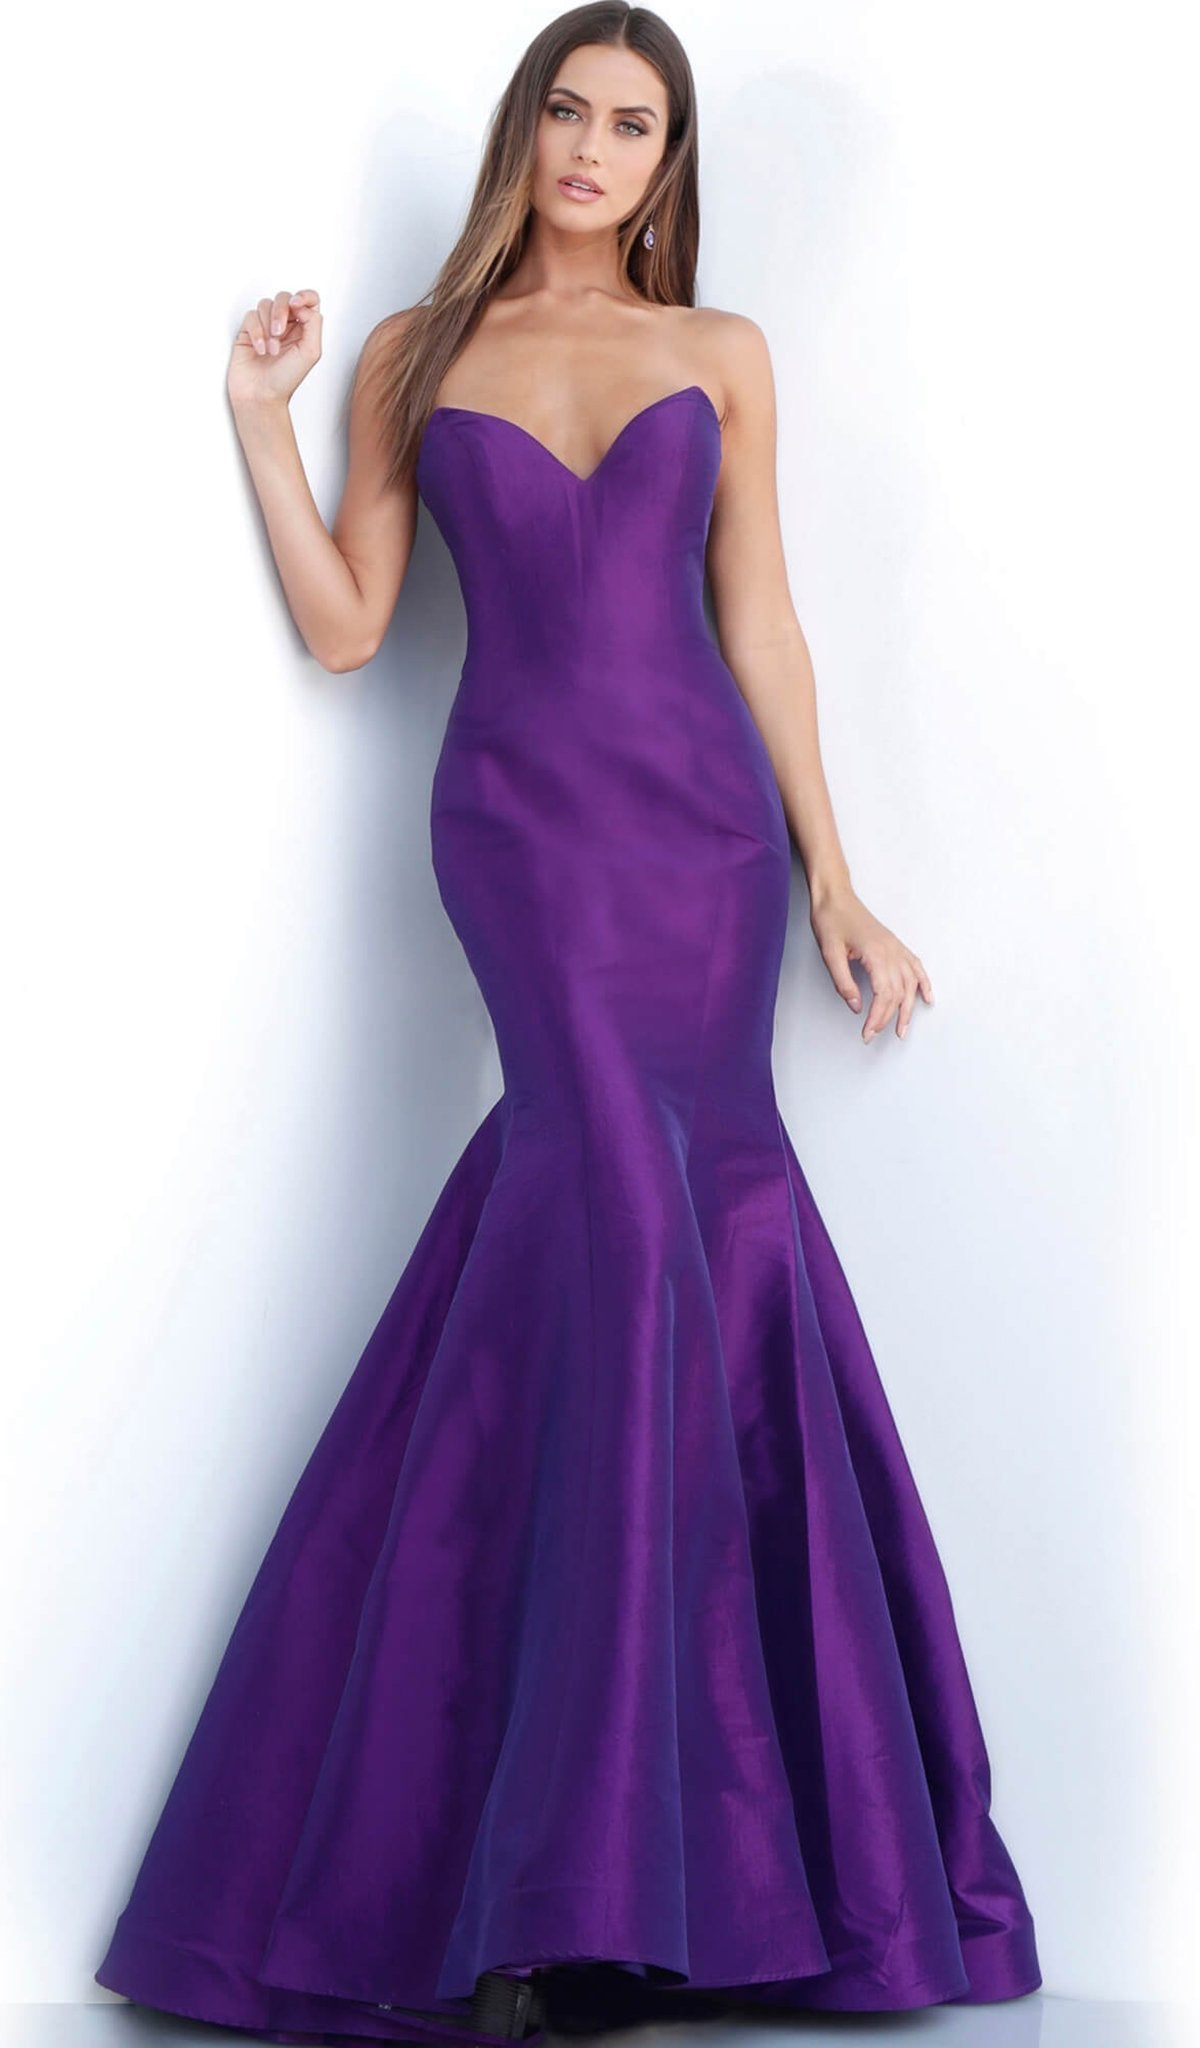 Jovani - 67412 Strapless Plunging Sweetheart Dress With Train In Purple